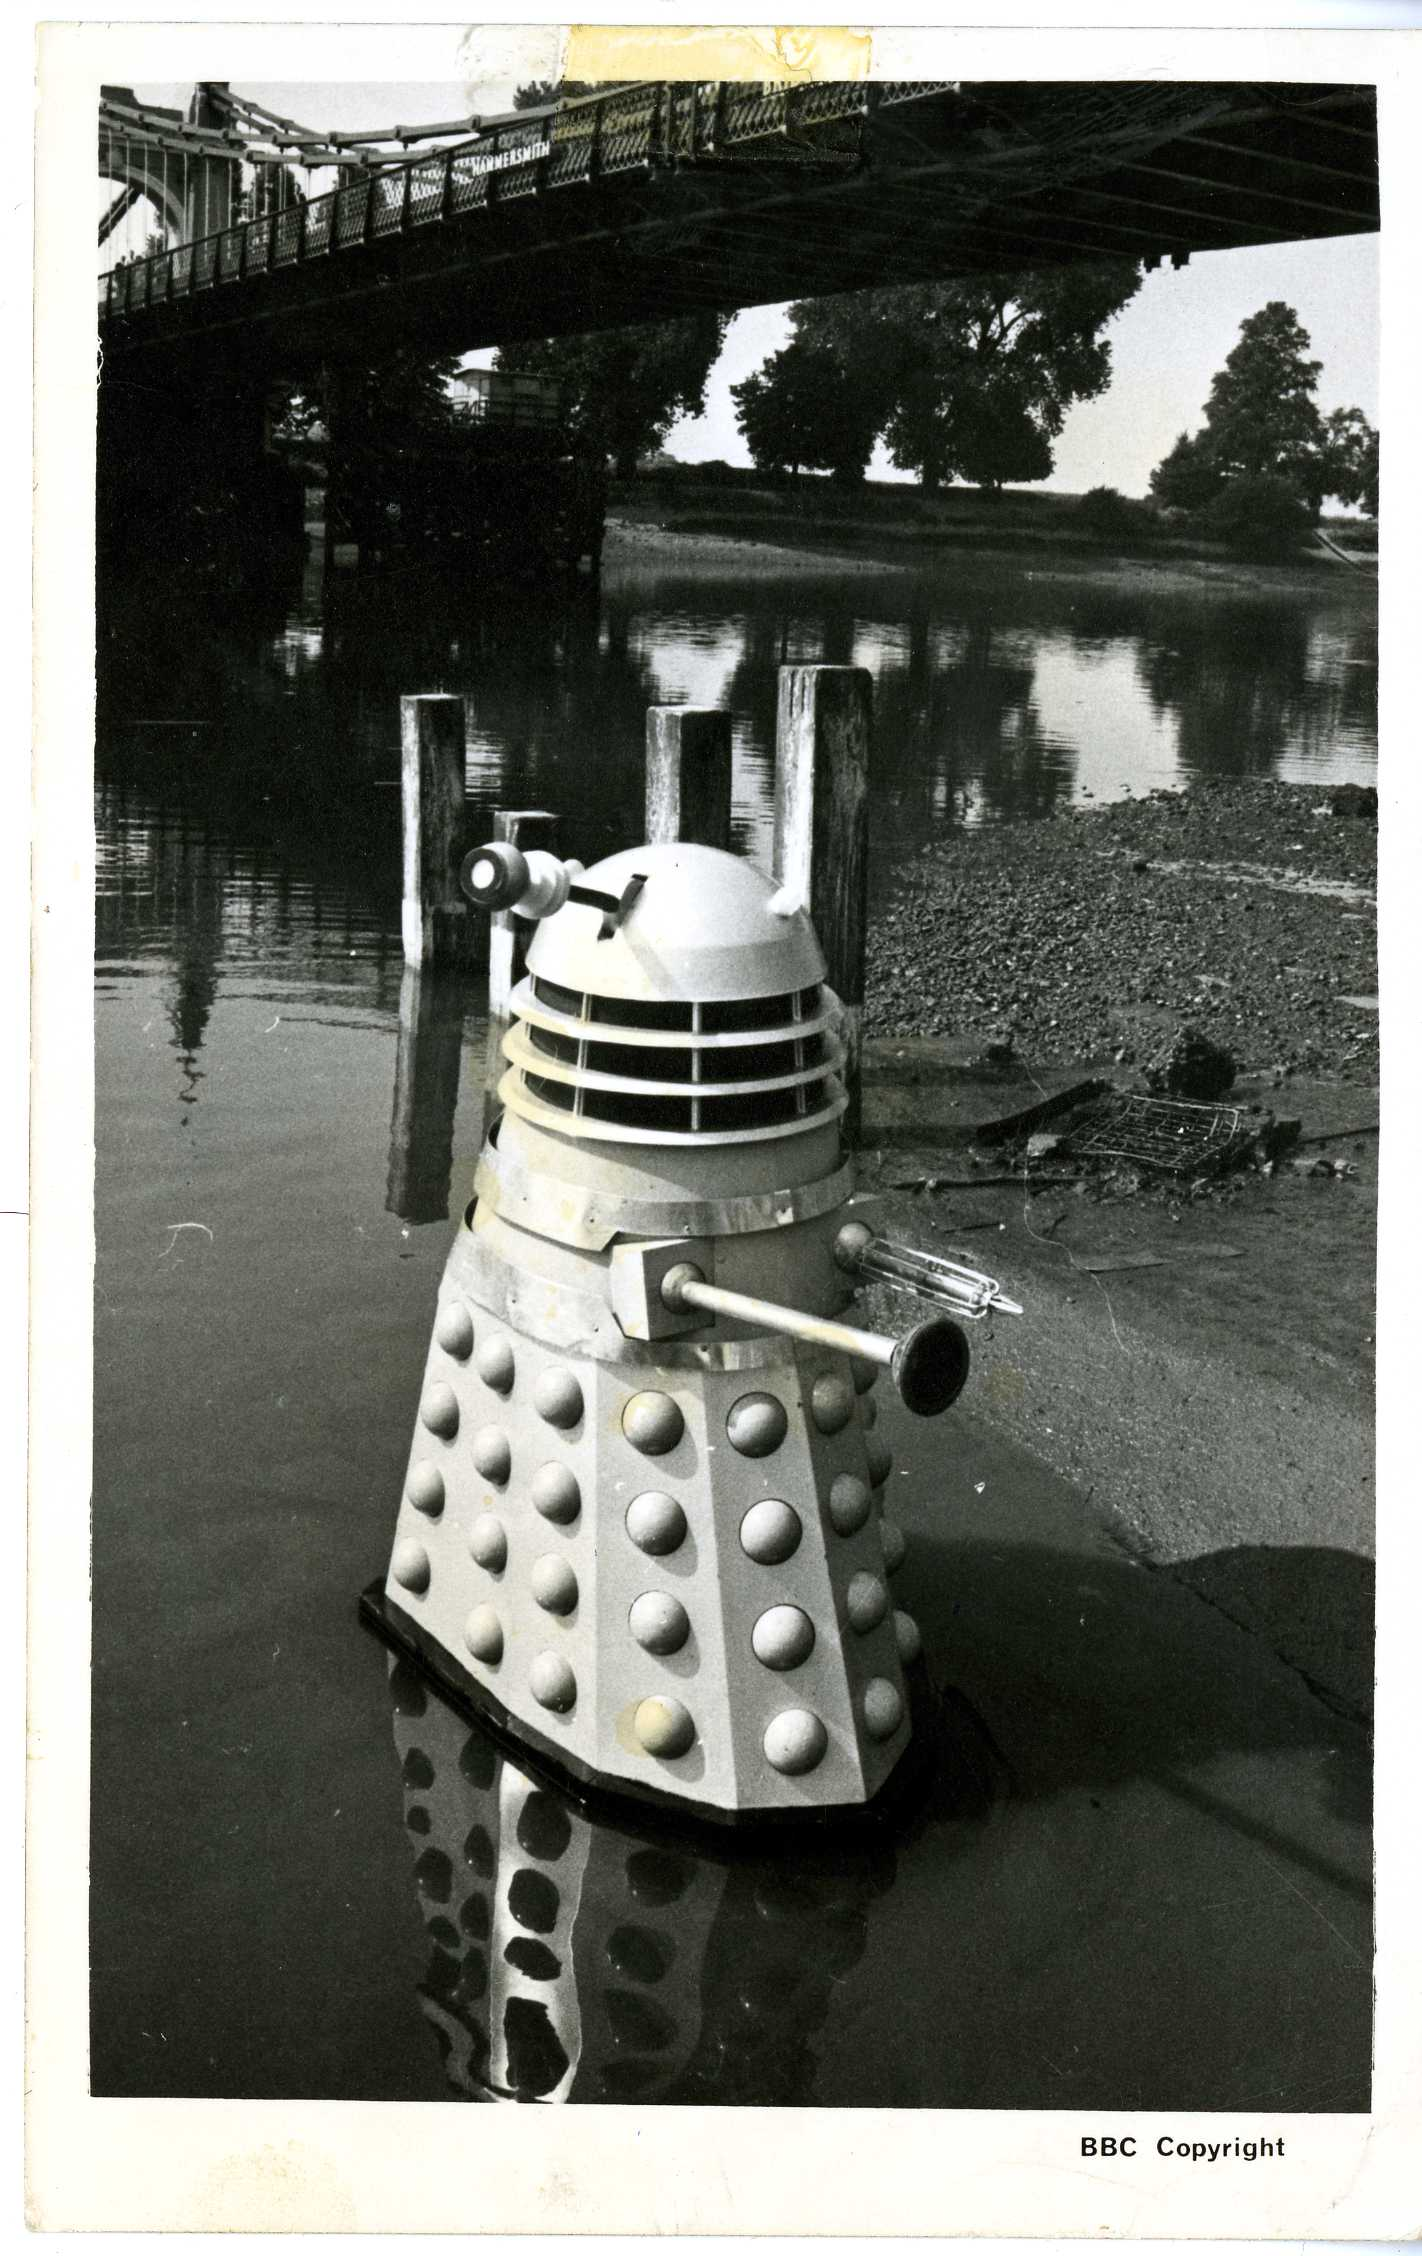 BBC TV Fan Card of a Dalek from The Dalek Invasion of Earth